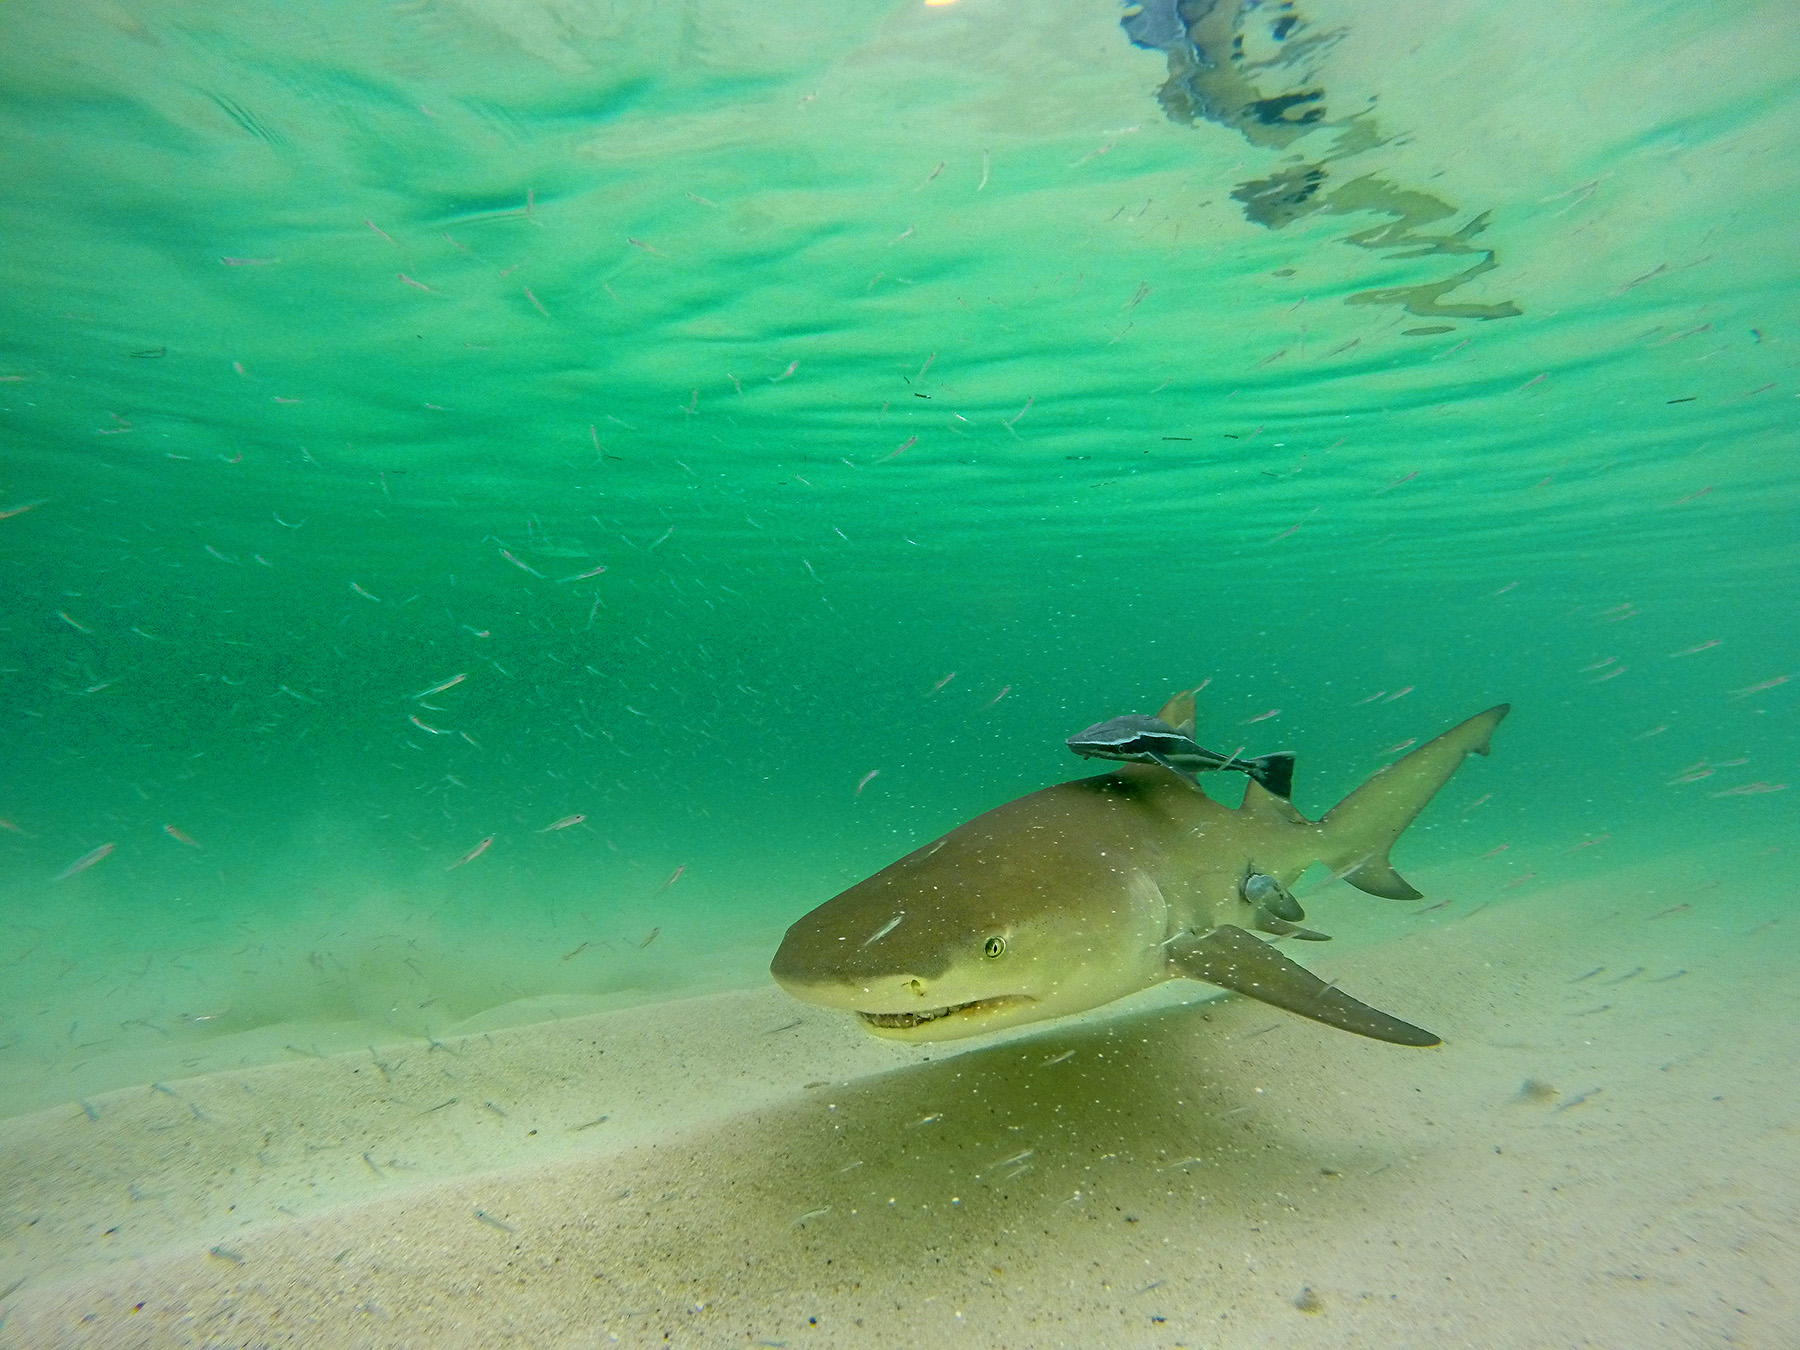 lemon-shark-underwater-in-the-florida-keys-flats-saltwater-experience-jason-stemple